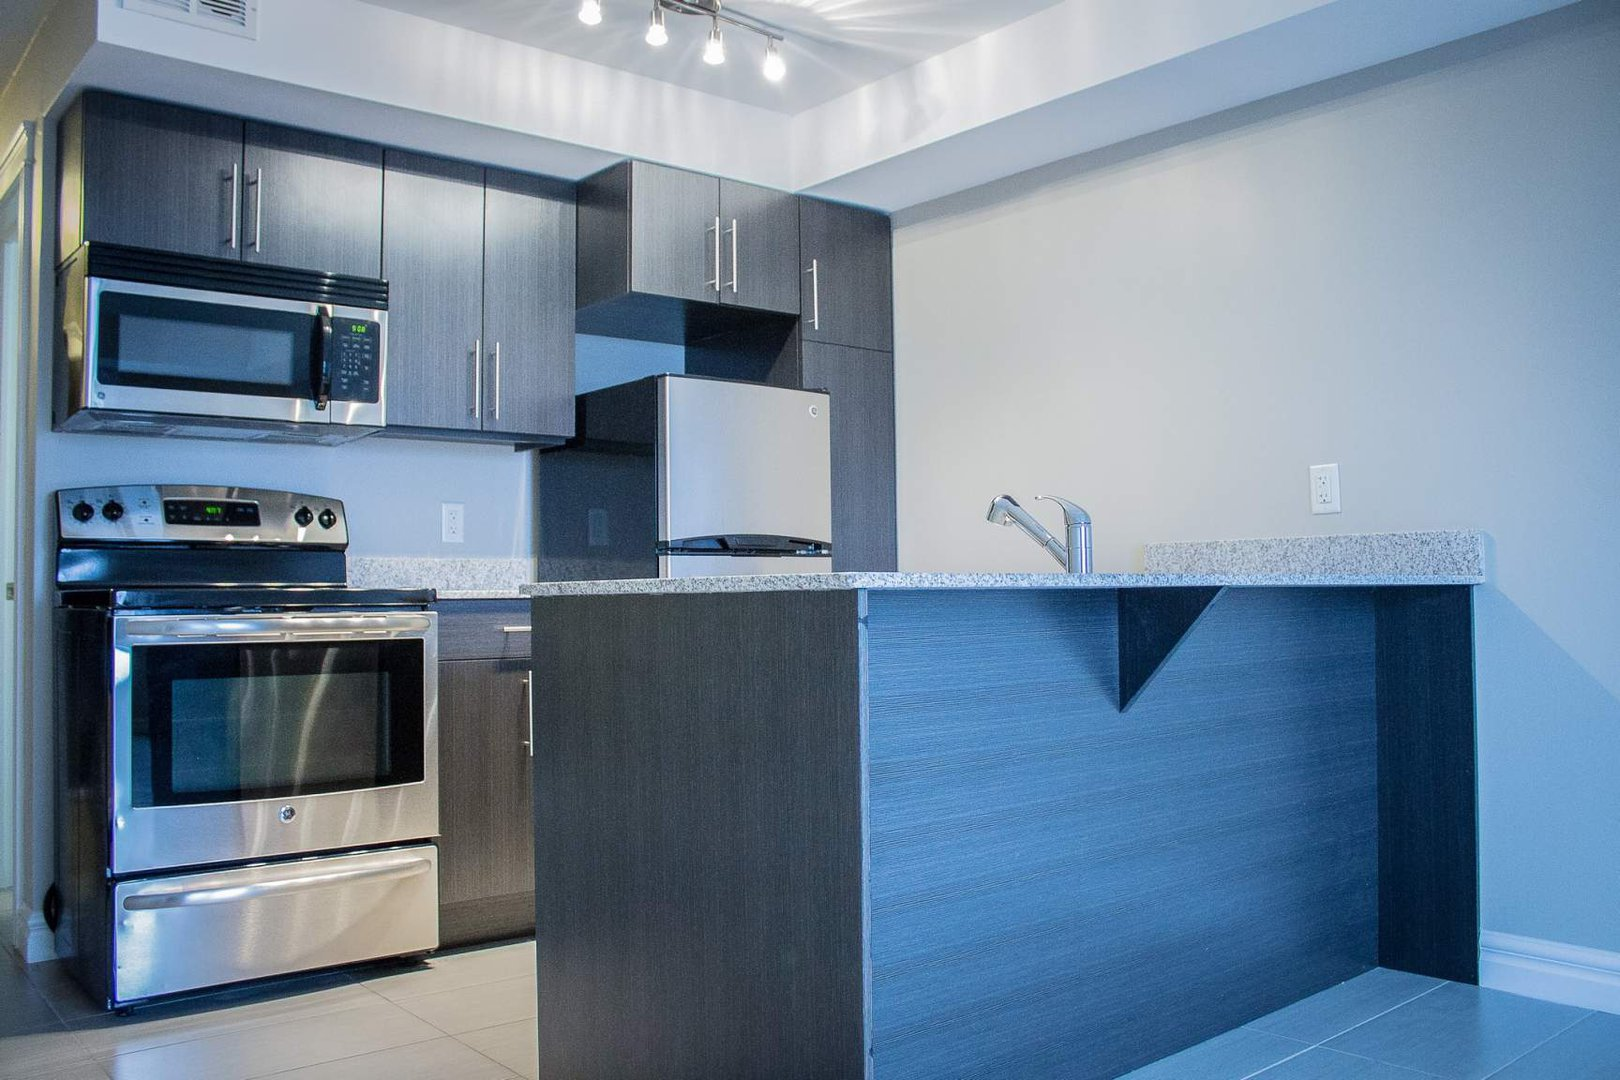 Mid-Rise-Apartment for rent at 747 Coverdale Road, Moncton, NB. This is the kitchen with kitchen bar, stainless steel, tile floor, oven and microwave.